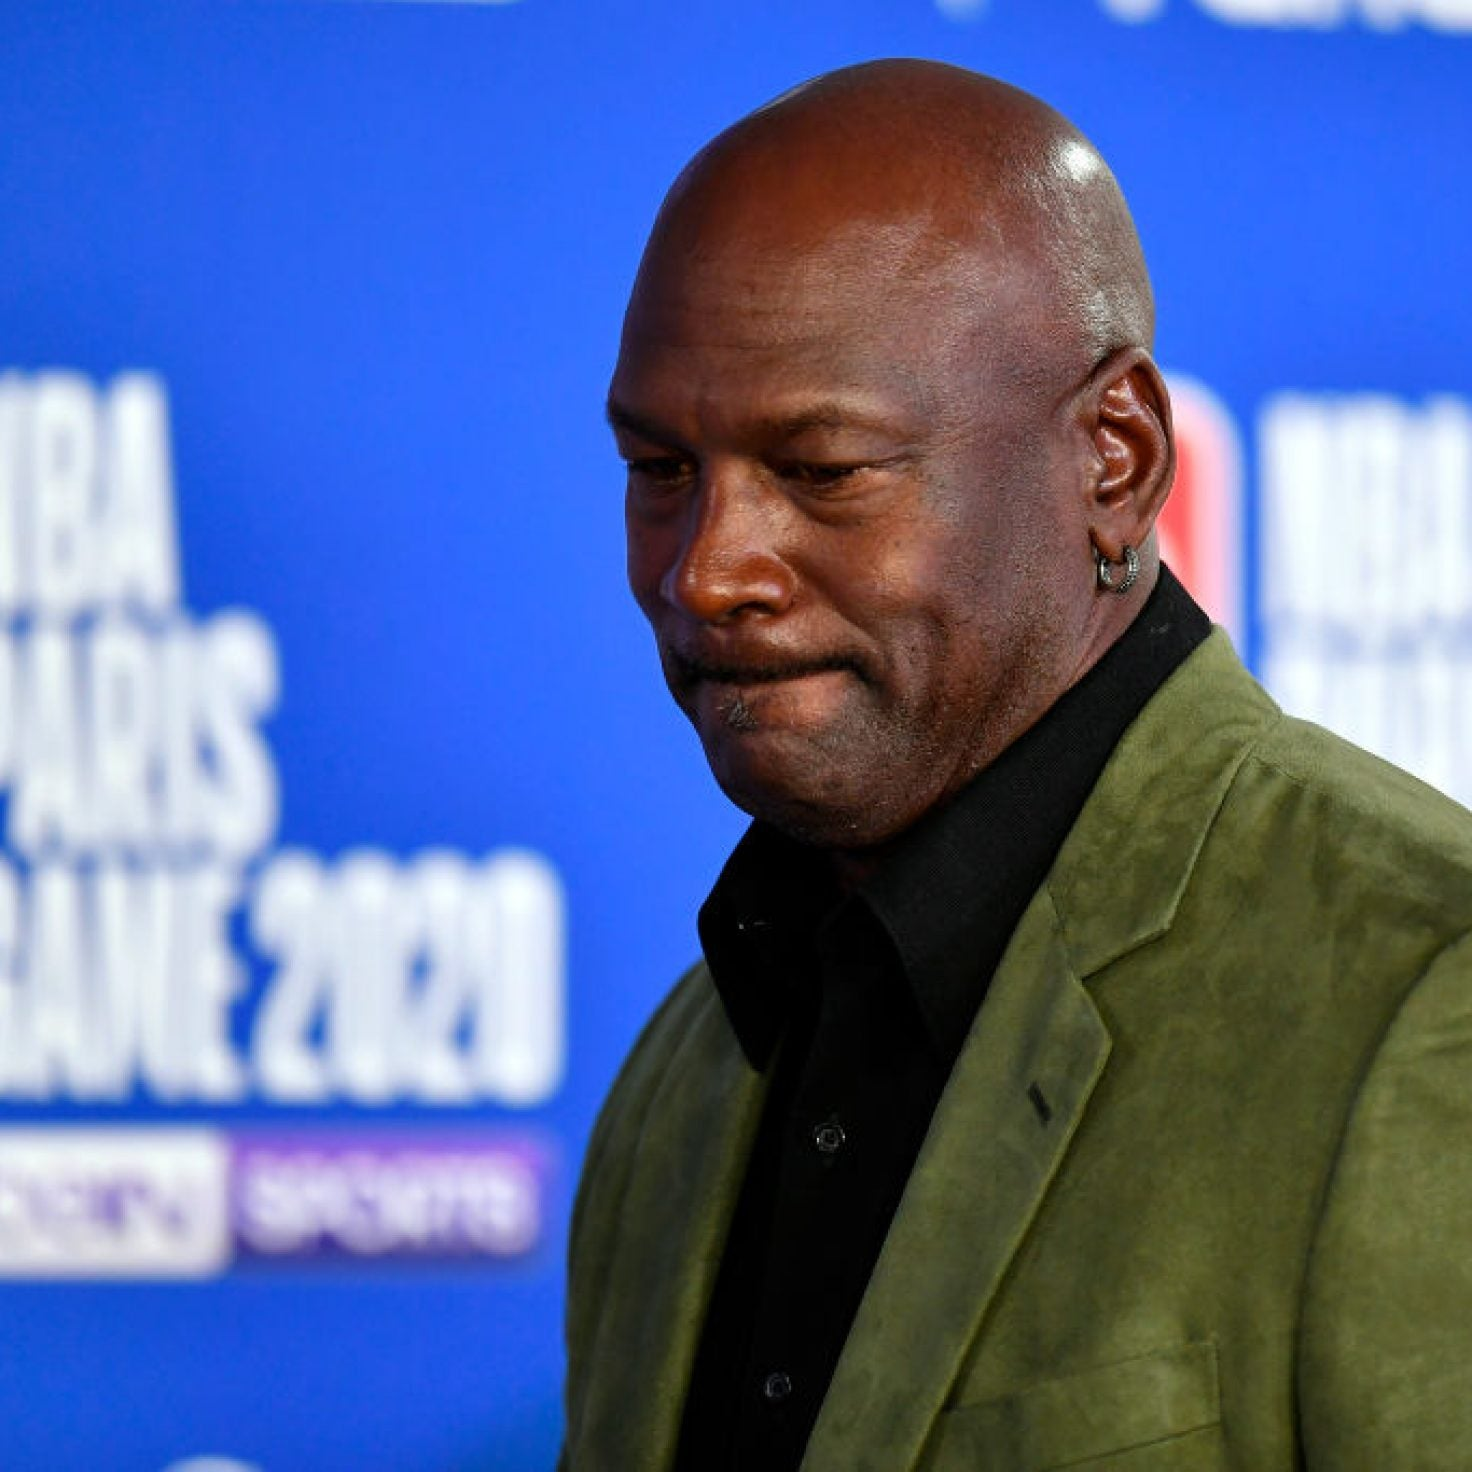 Michael Jordan Speaks Out On George Floyd's Murder In Rare Statement: 'We Have Had Enough'